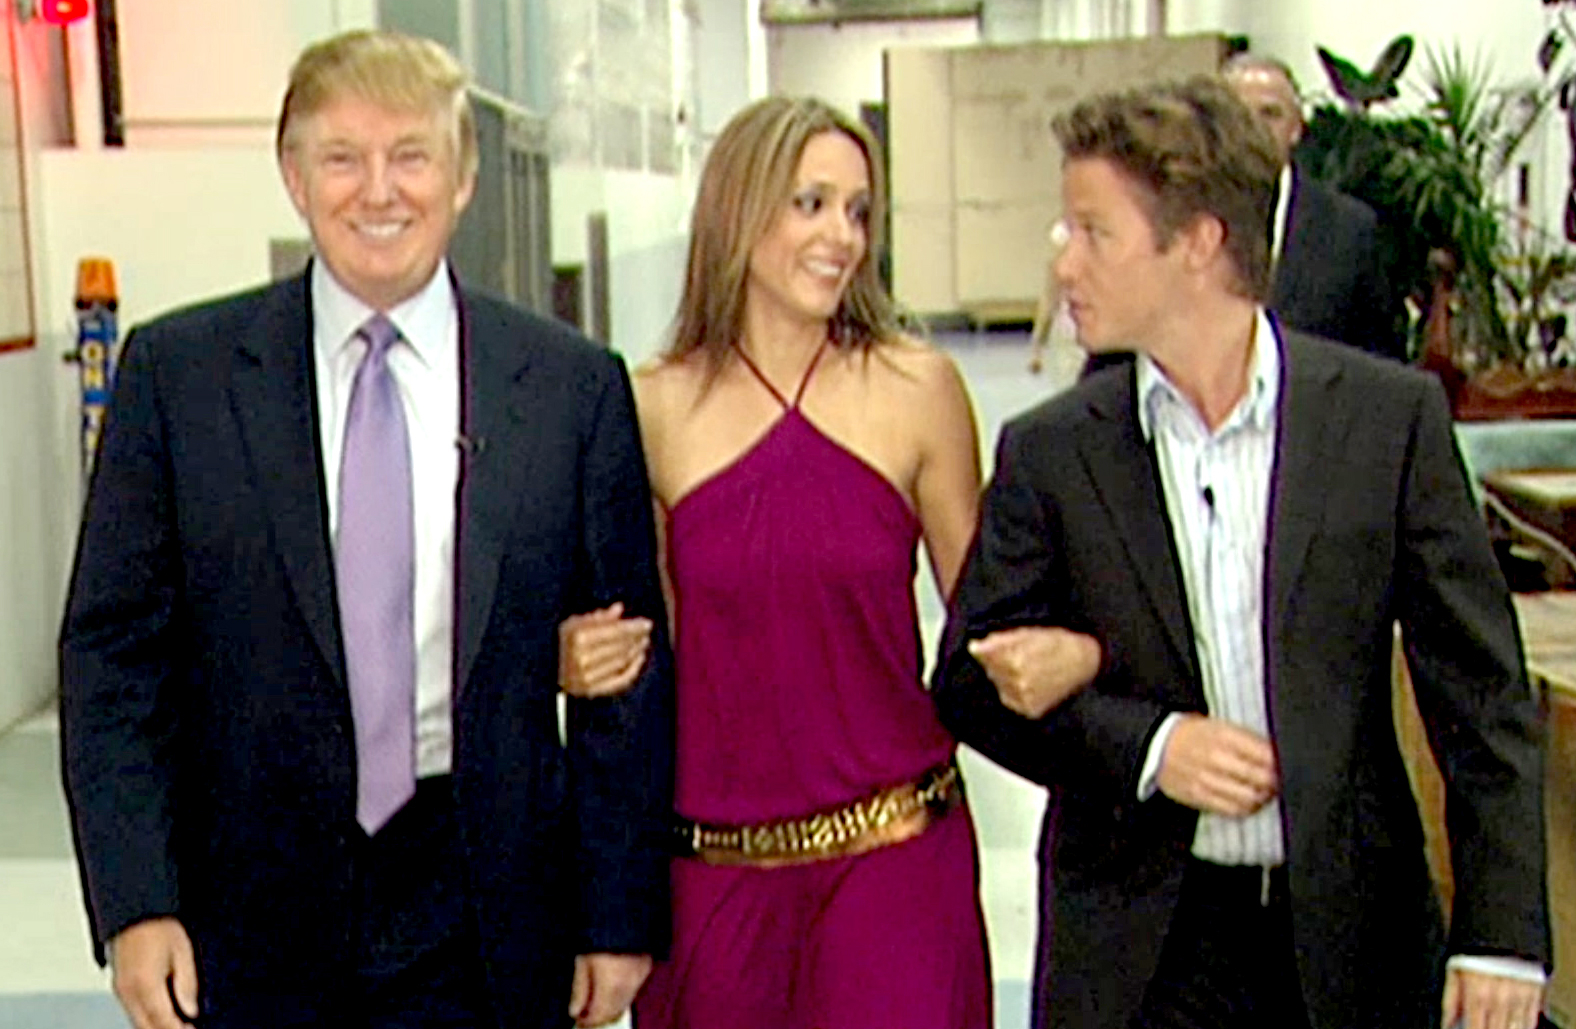 In this 2005 frame from video, Donald Trump prepares for an appearance on 'Days of Our Lives' with actress Arianne Zucker (center). He is accompanied to the set by Access Hollywood host Billy Bush.